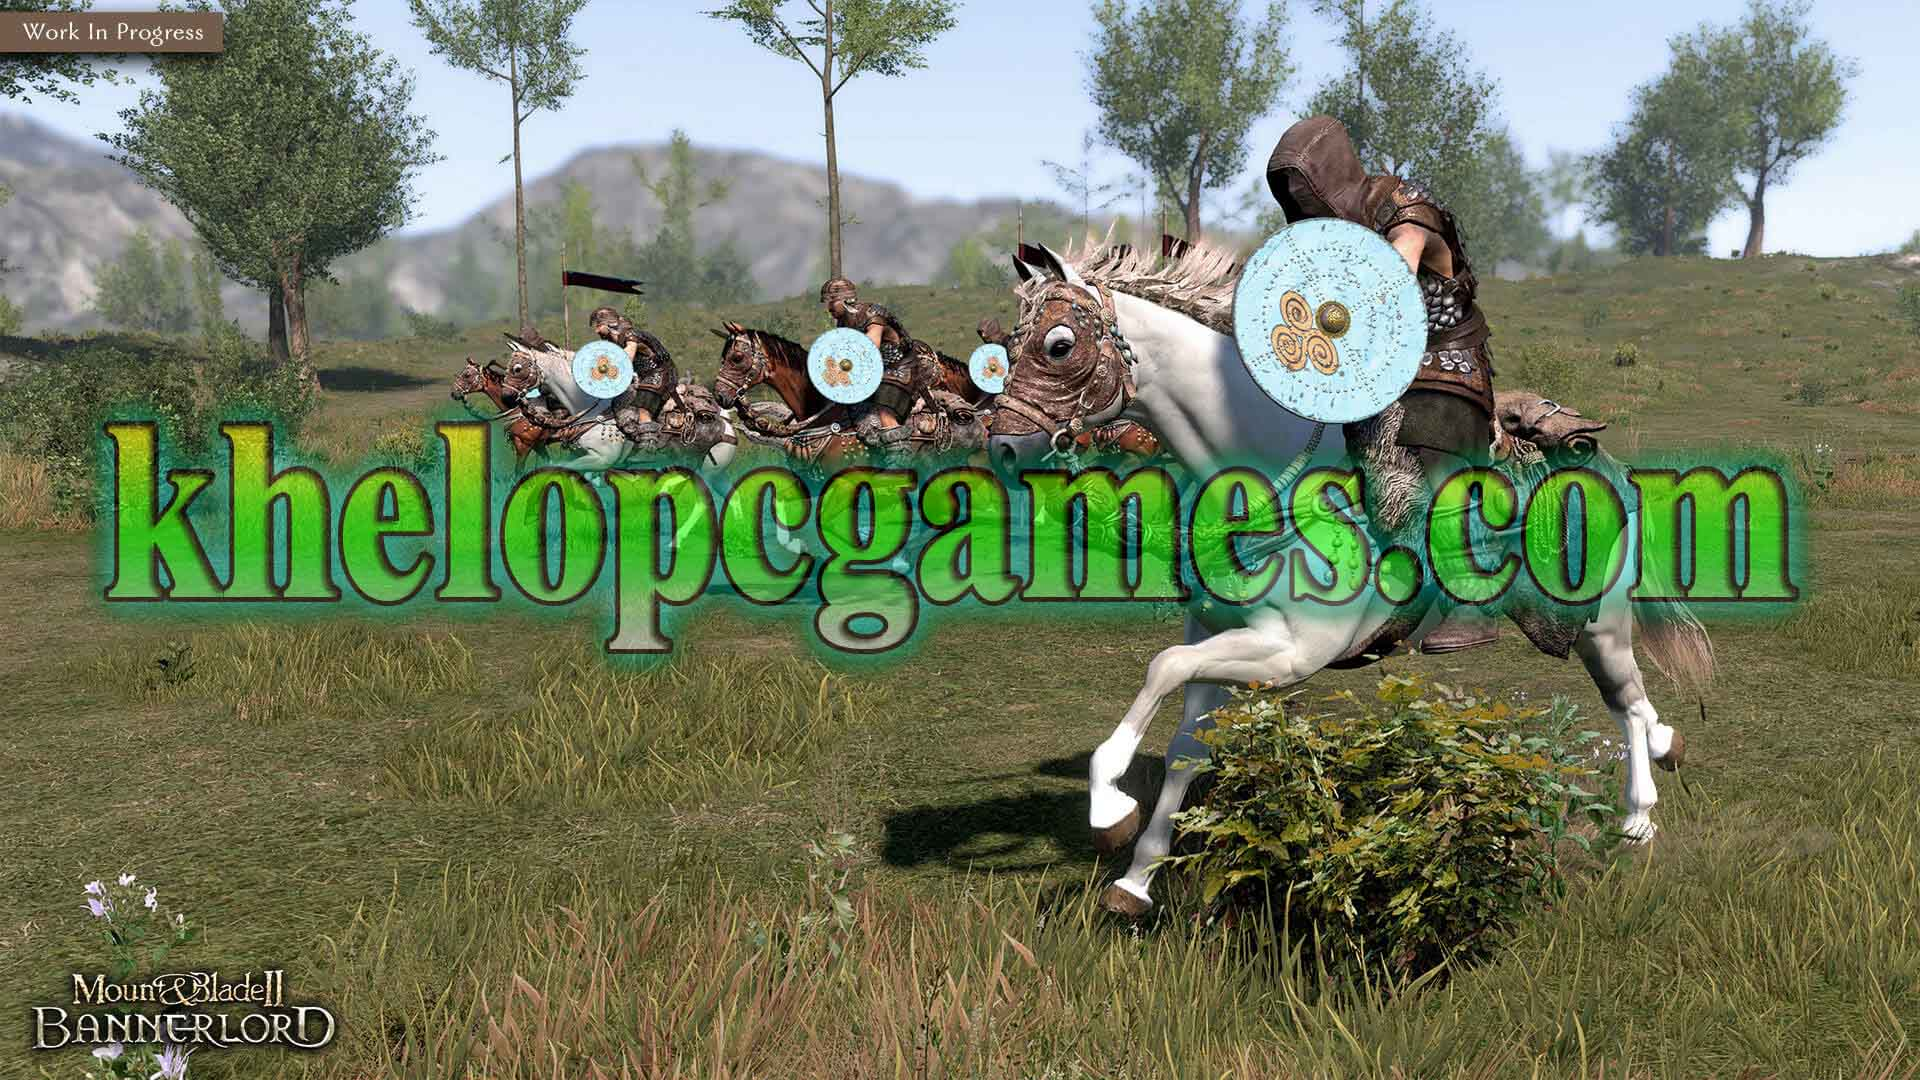 Mount & Blade II: Bannerlord CODEX 2020 Pc Game Free Download